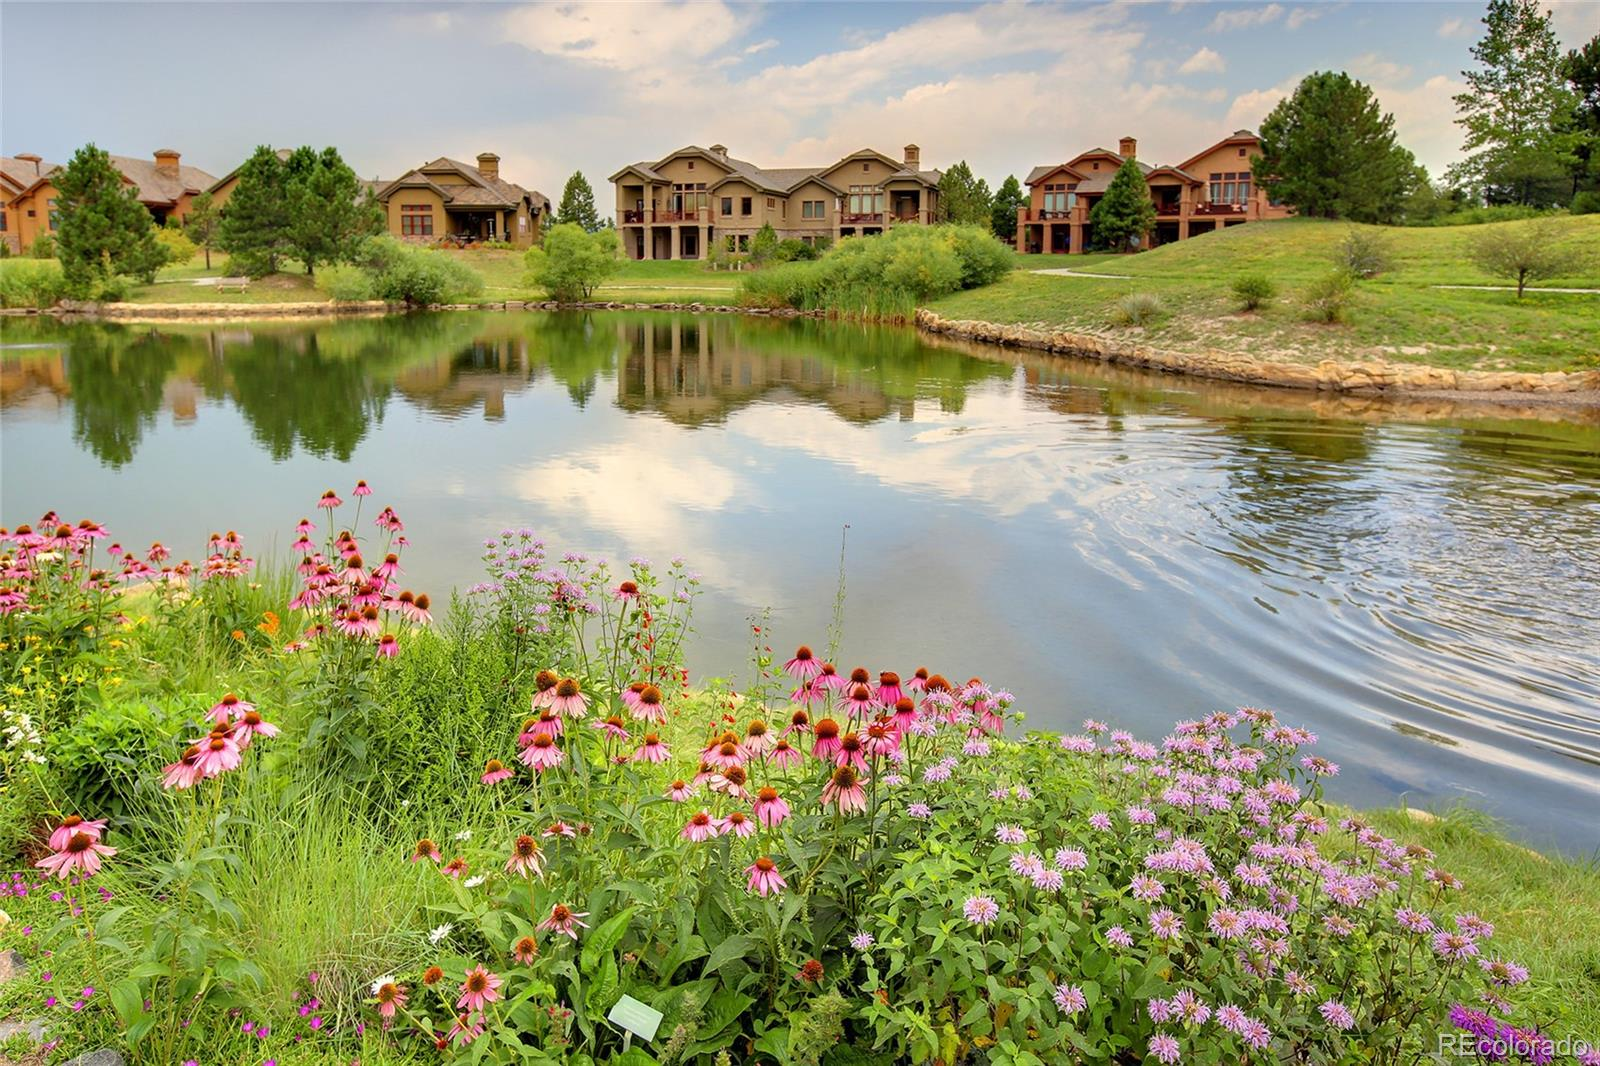 MLS# 5717518 - 26 - 952 Country Club Parkway, Castle Rock, CO 80108